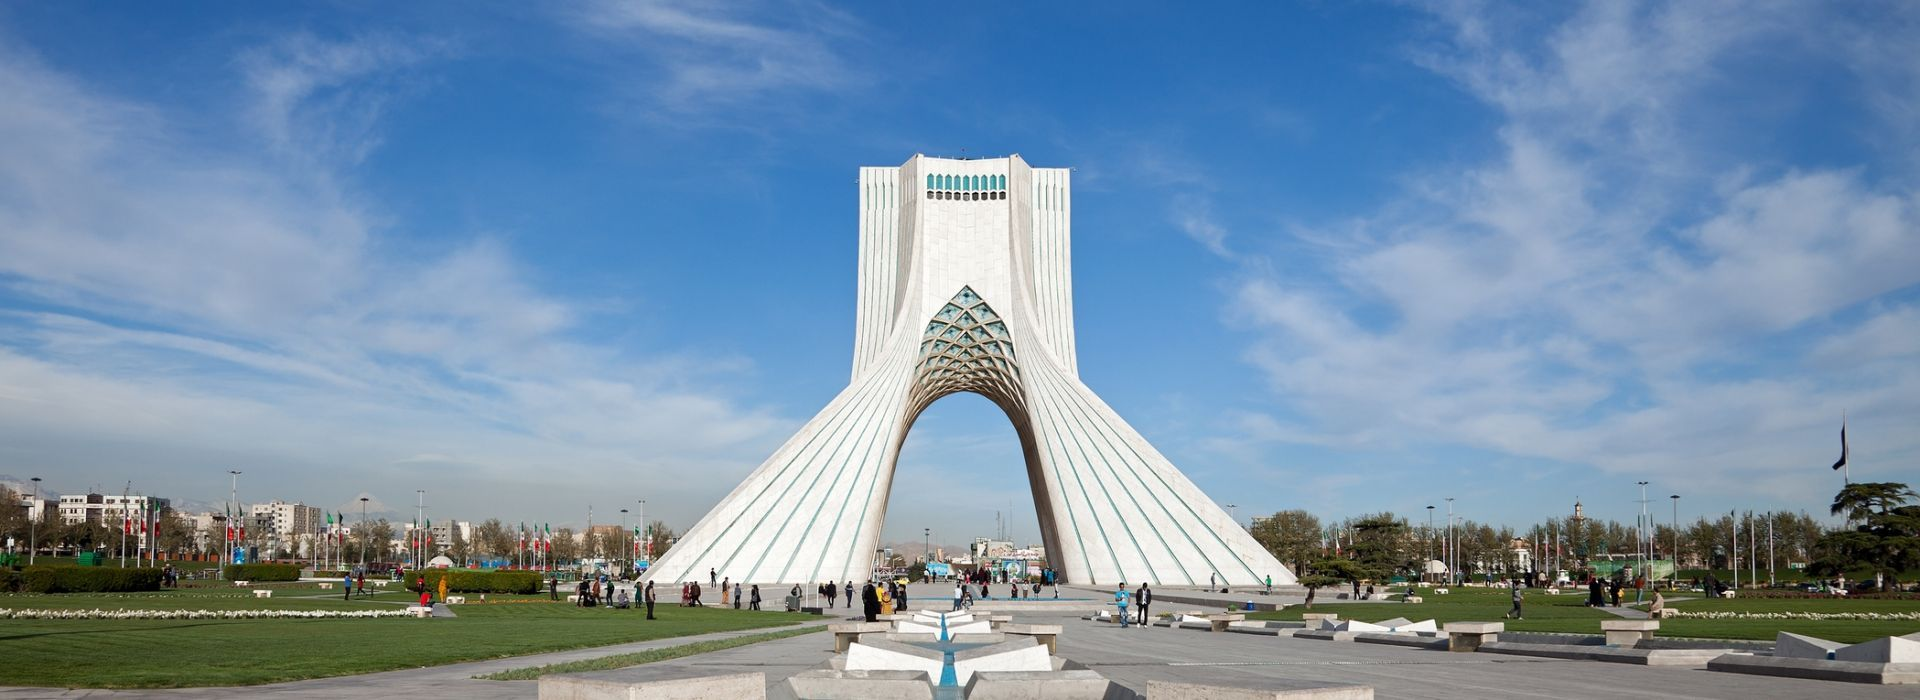 Sightseeing, attractions, culture and history Tours in Isfahan